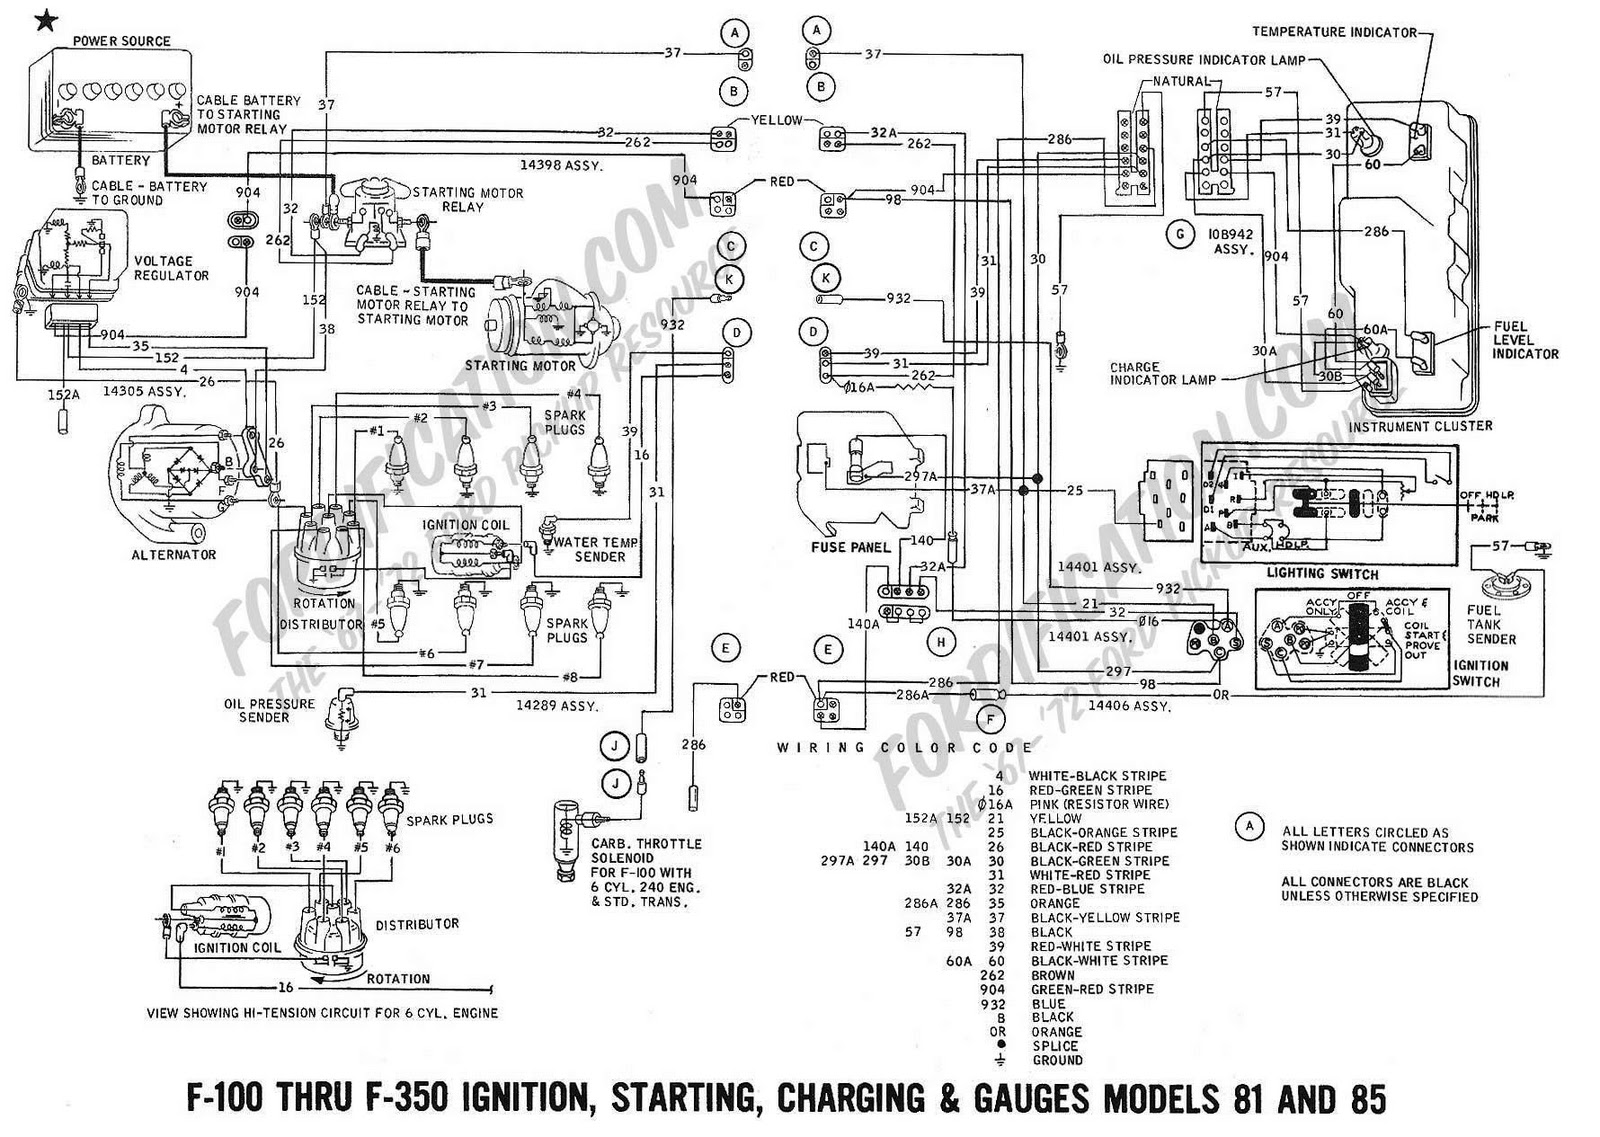 1967 Ford Ignition Coil Wiring Diagram Master Blogs 1970 Chrysler Switch 1963 Explained Rh 8 11 Corruptionincoal Org 1966 1972